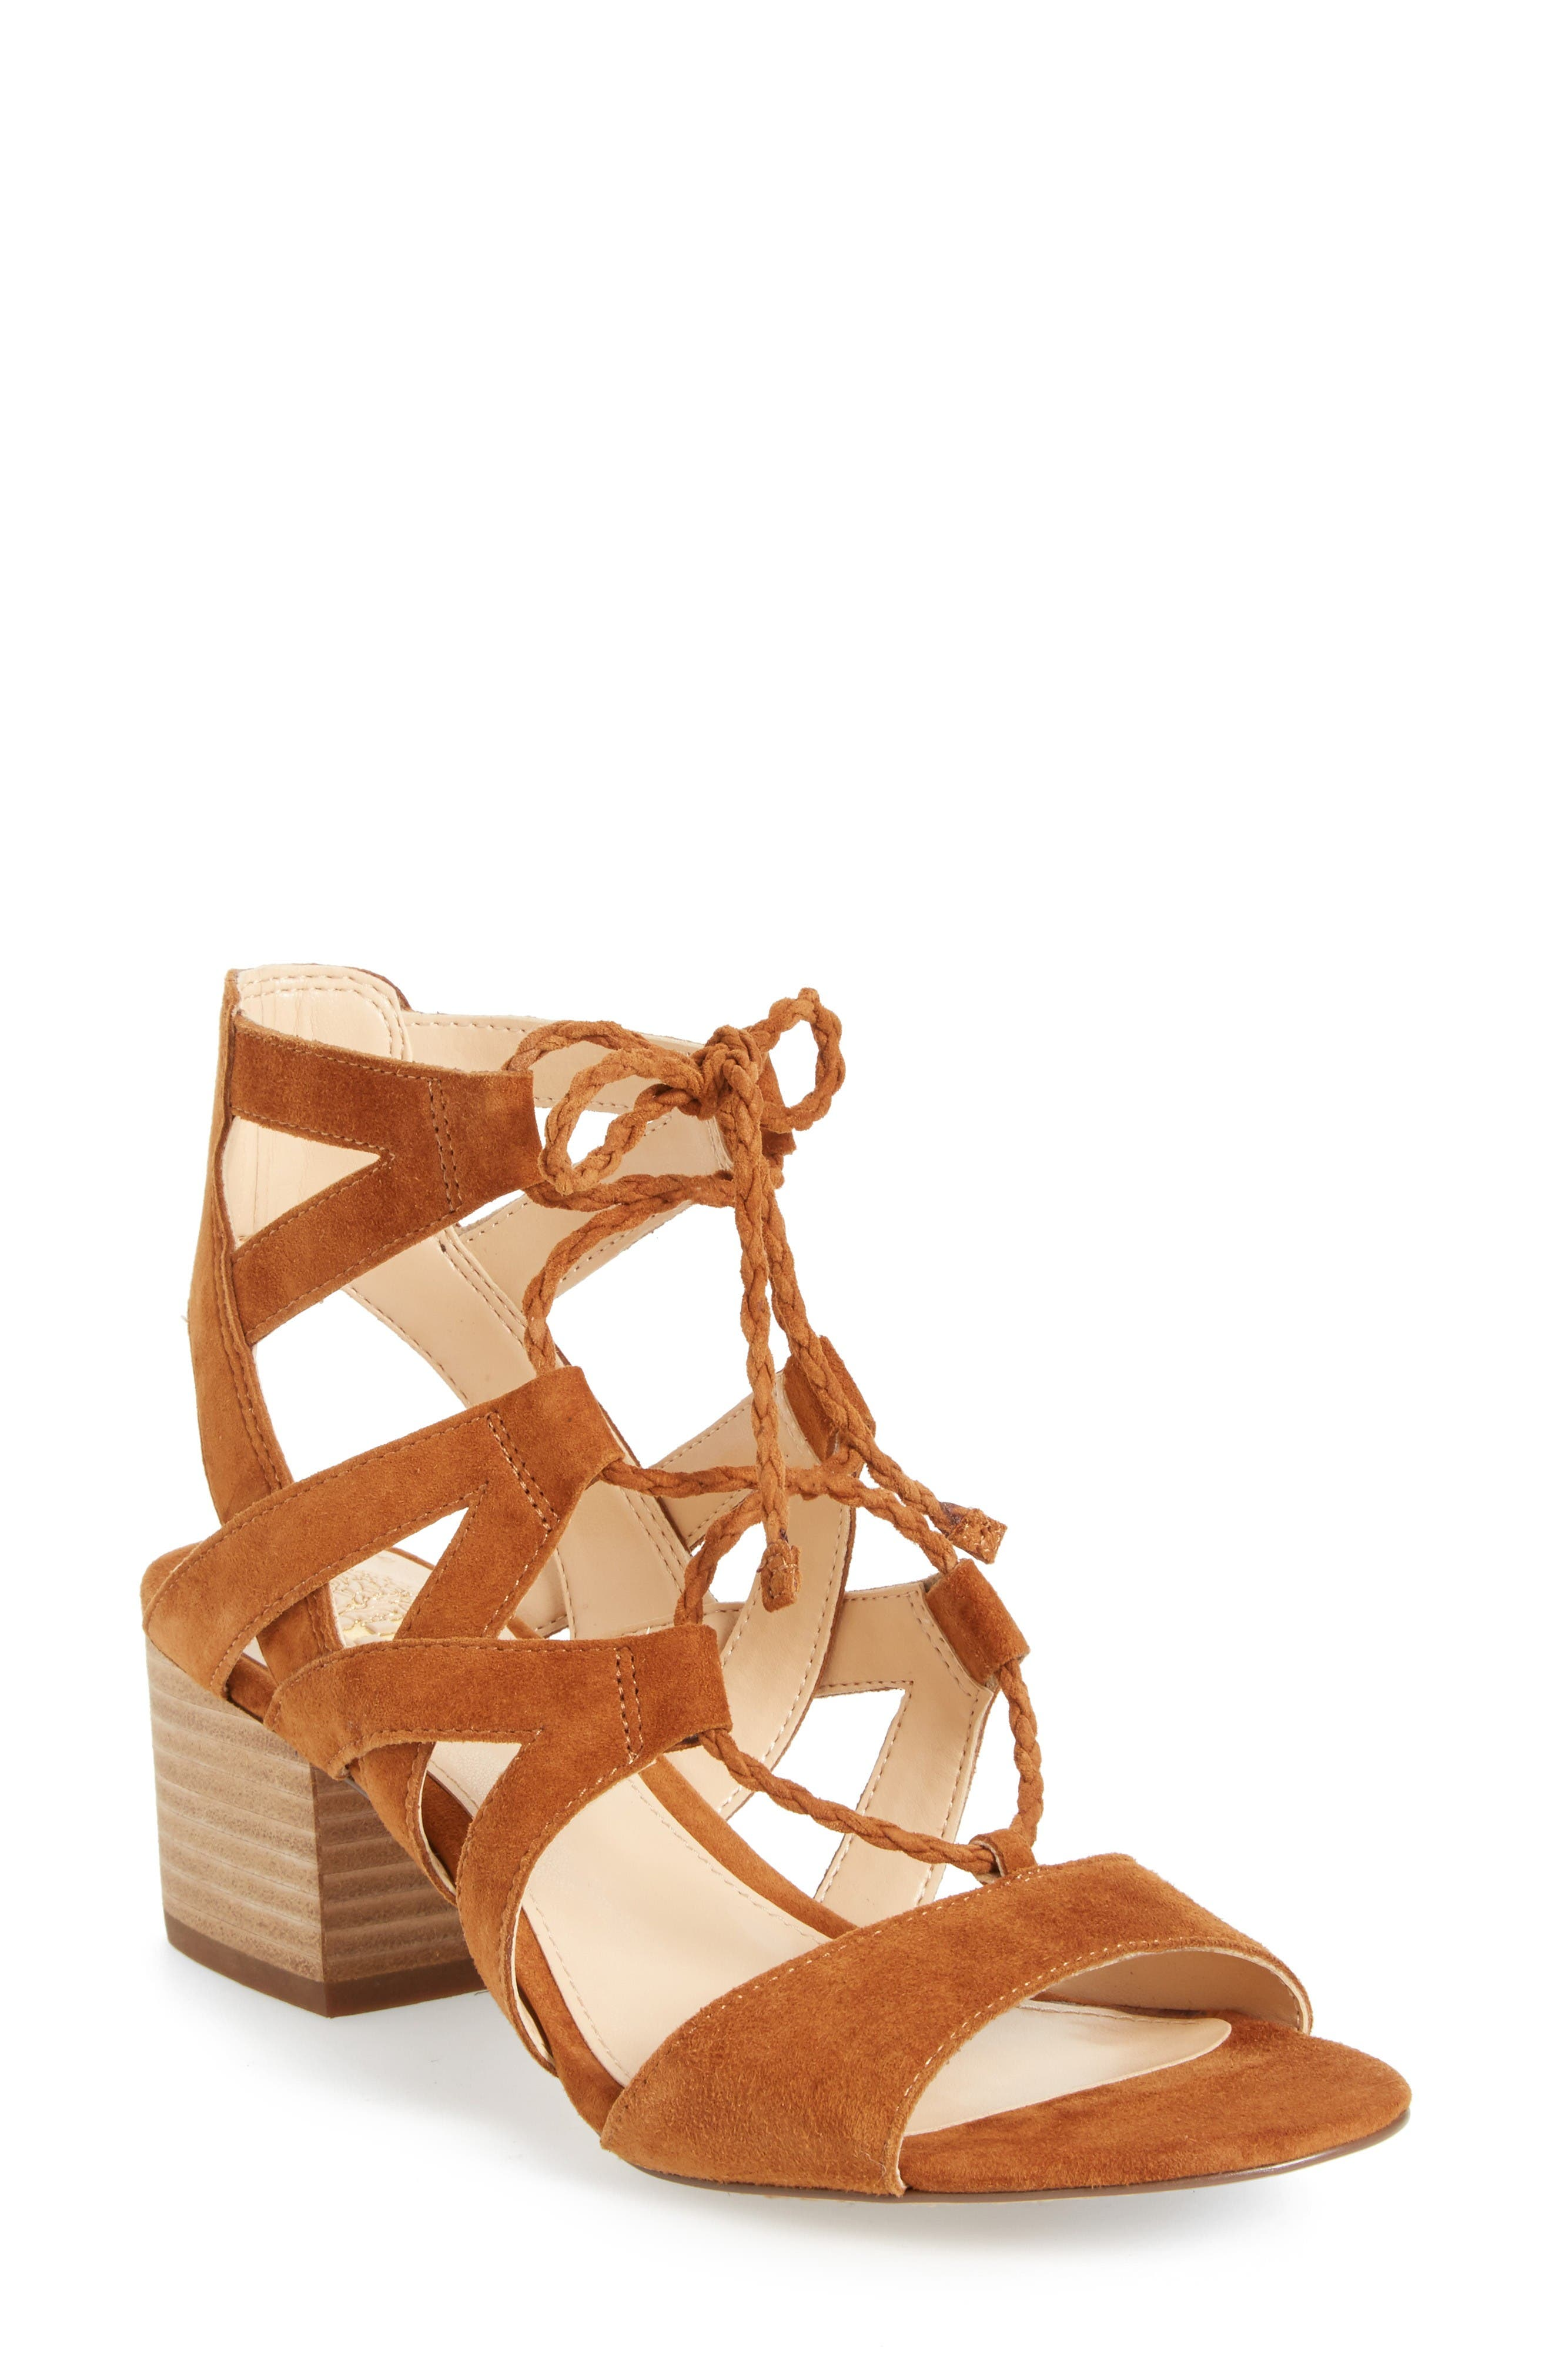 Alternate Image 1 Selected - Vince Camuto Fauna Sandal (Women)